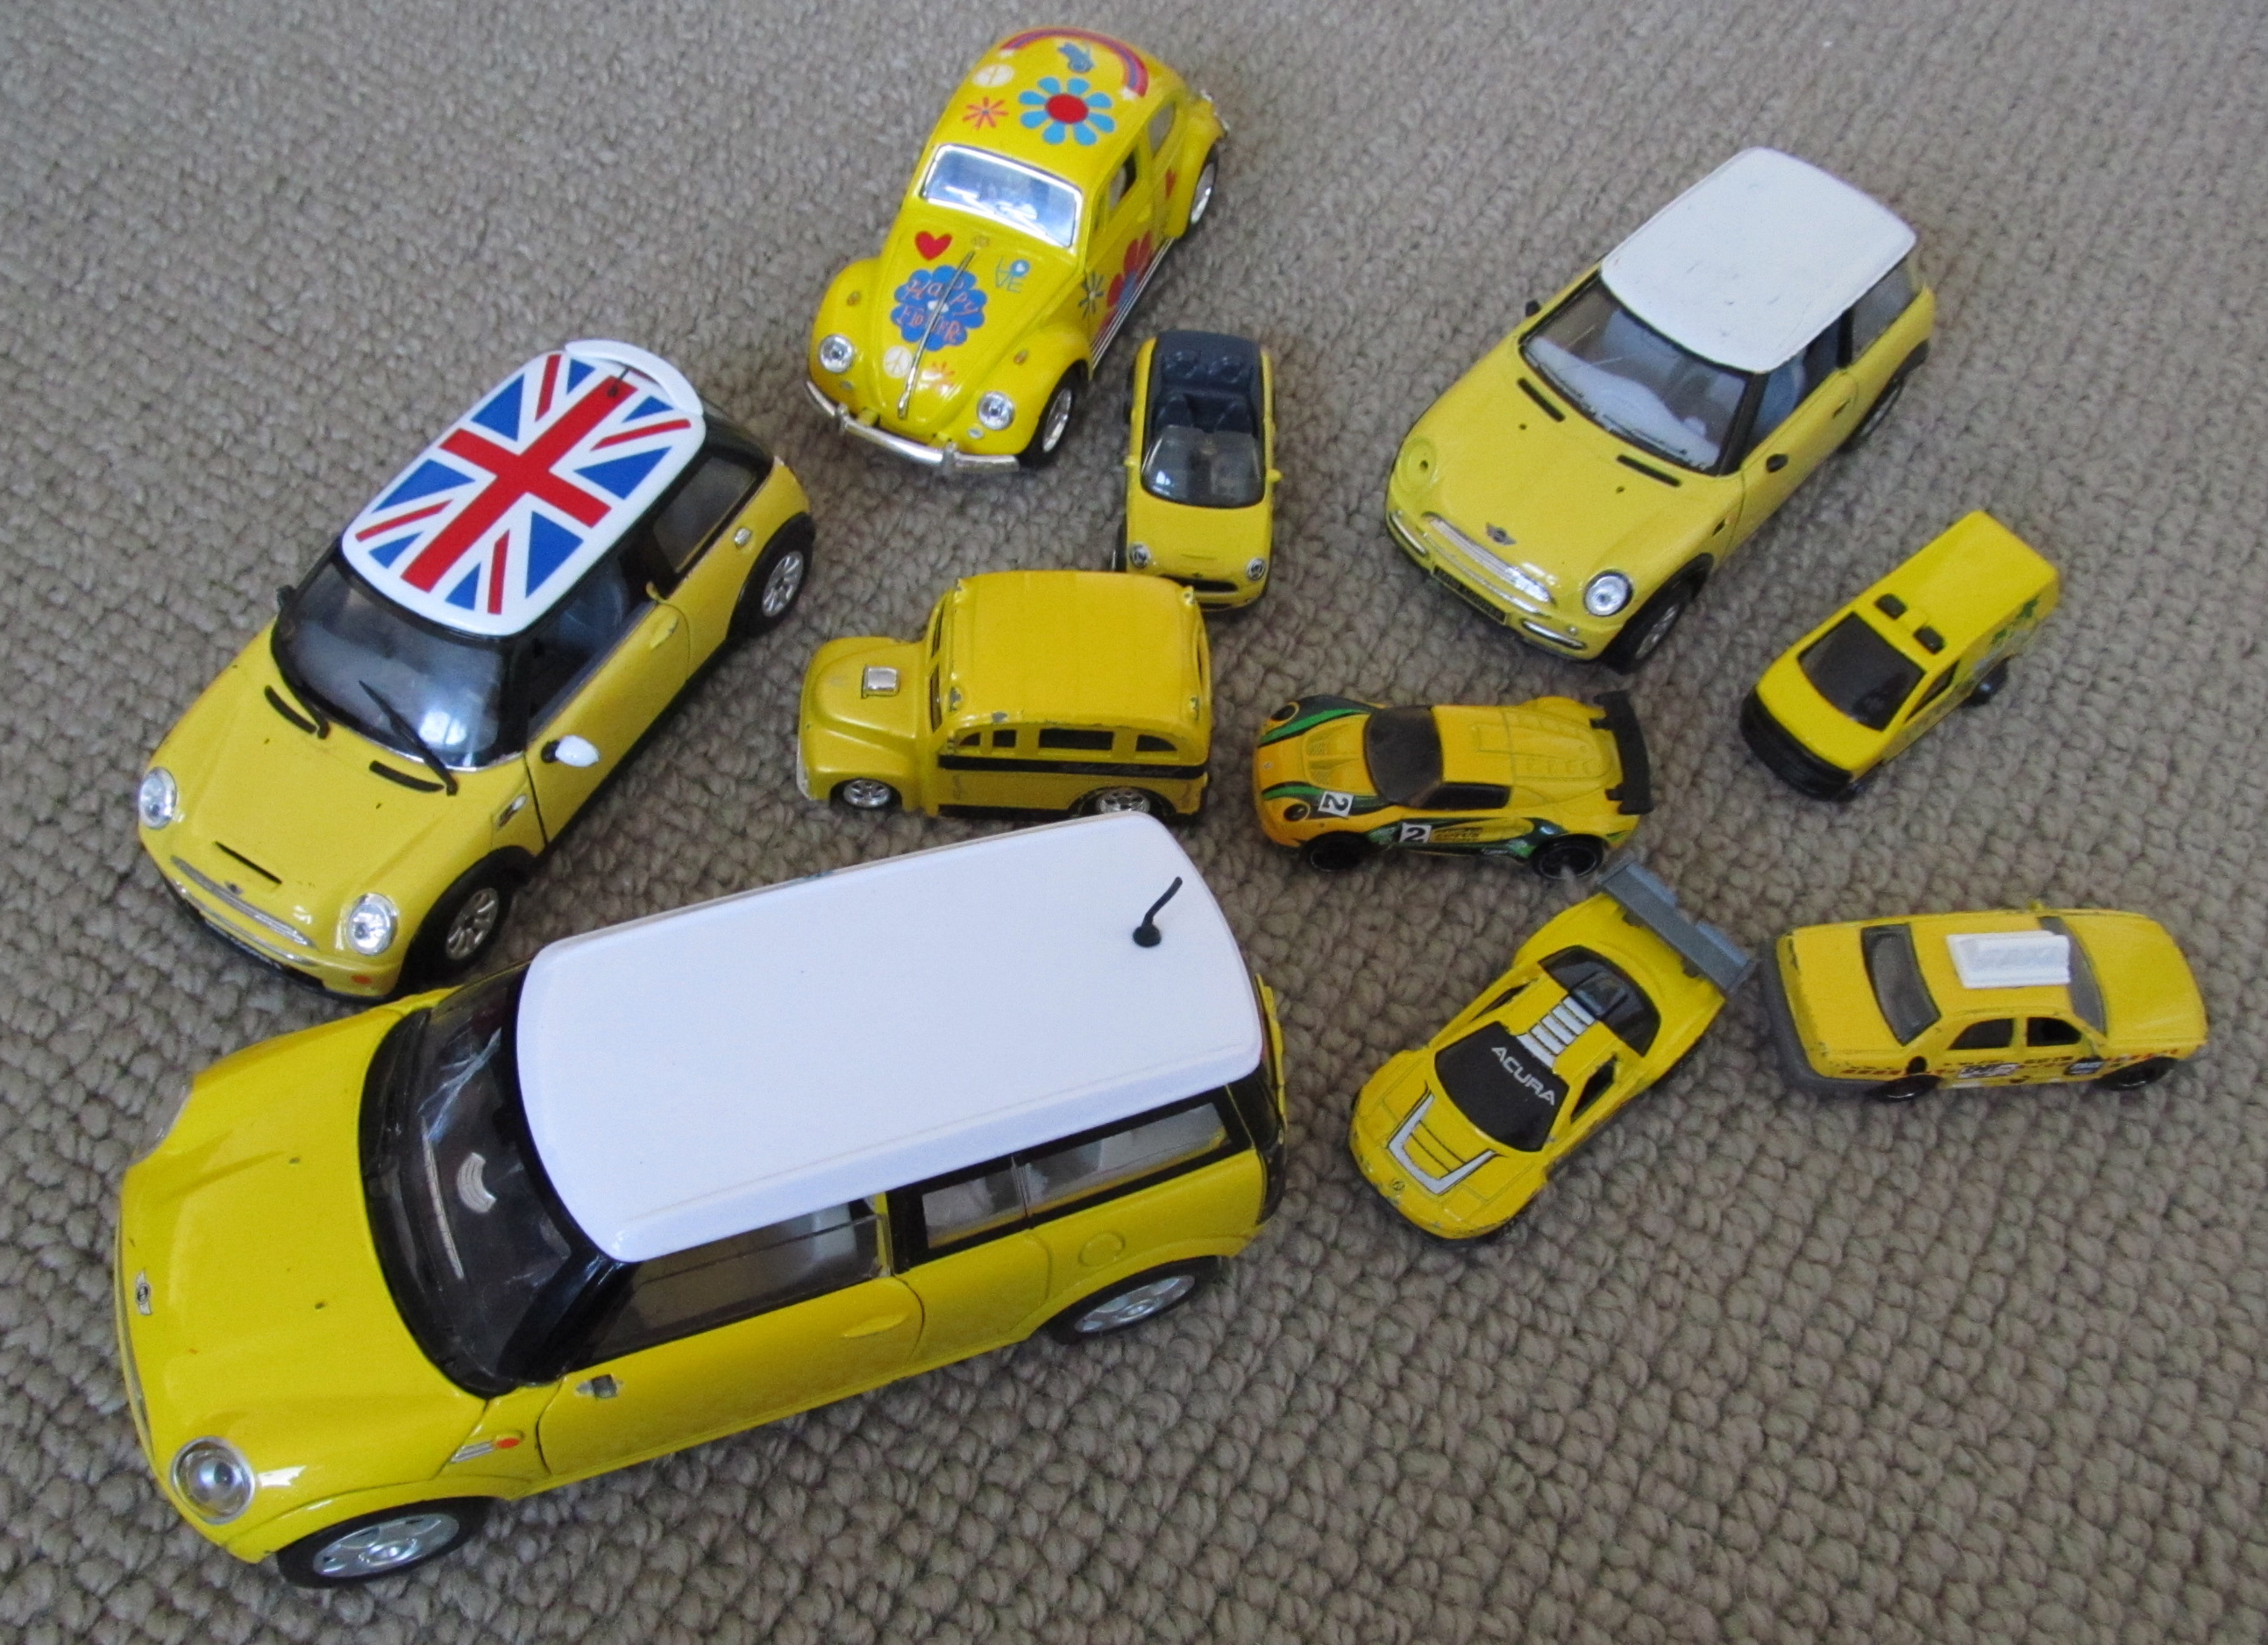 Traffic Jam of Yellow Cars